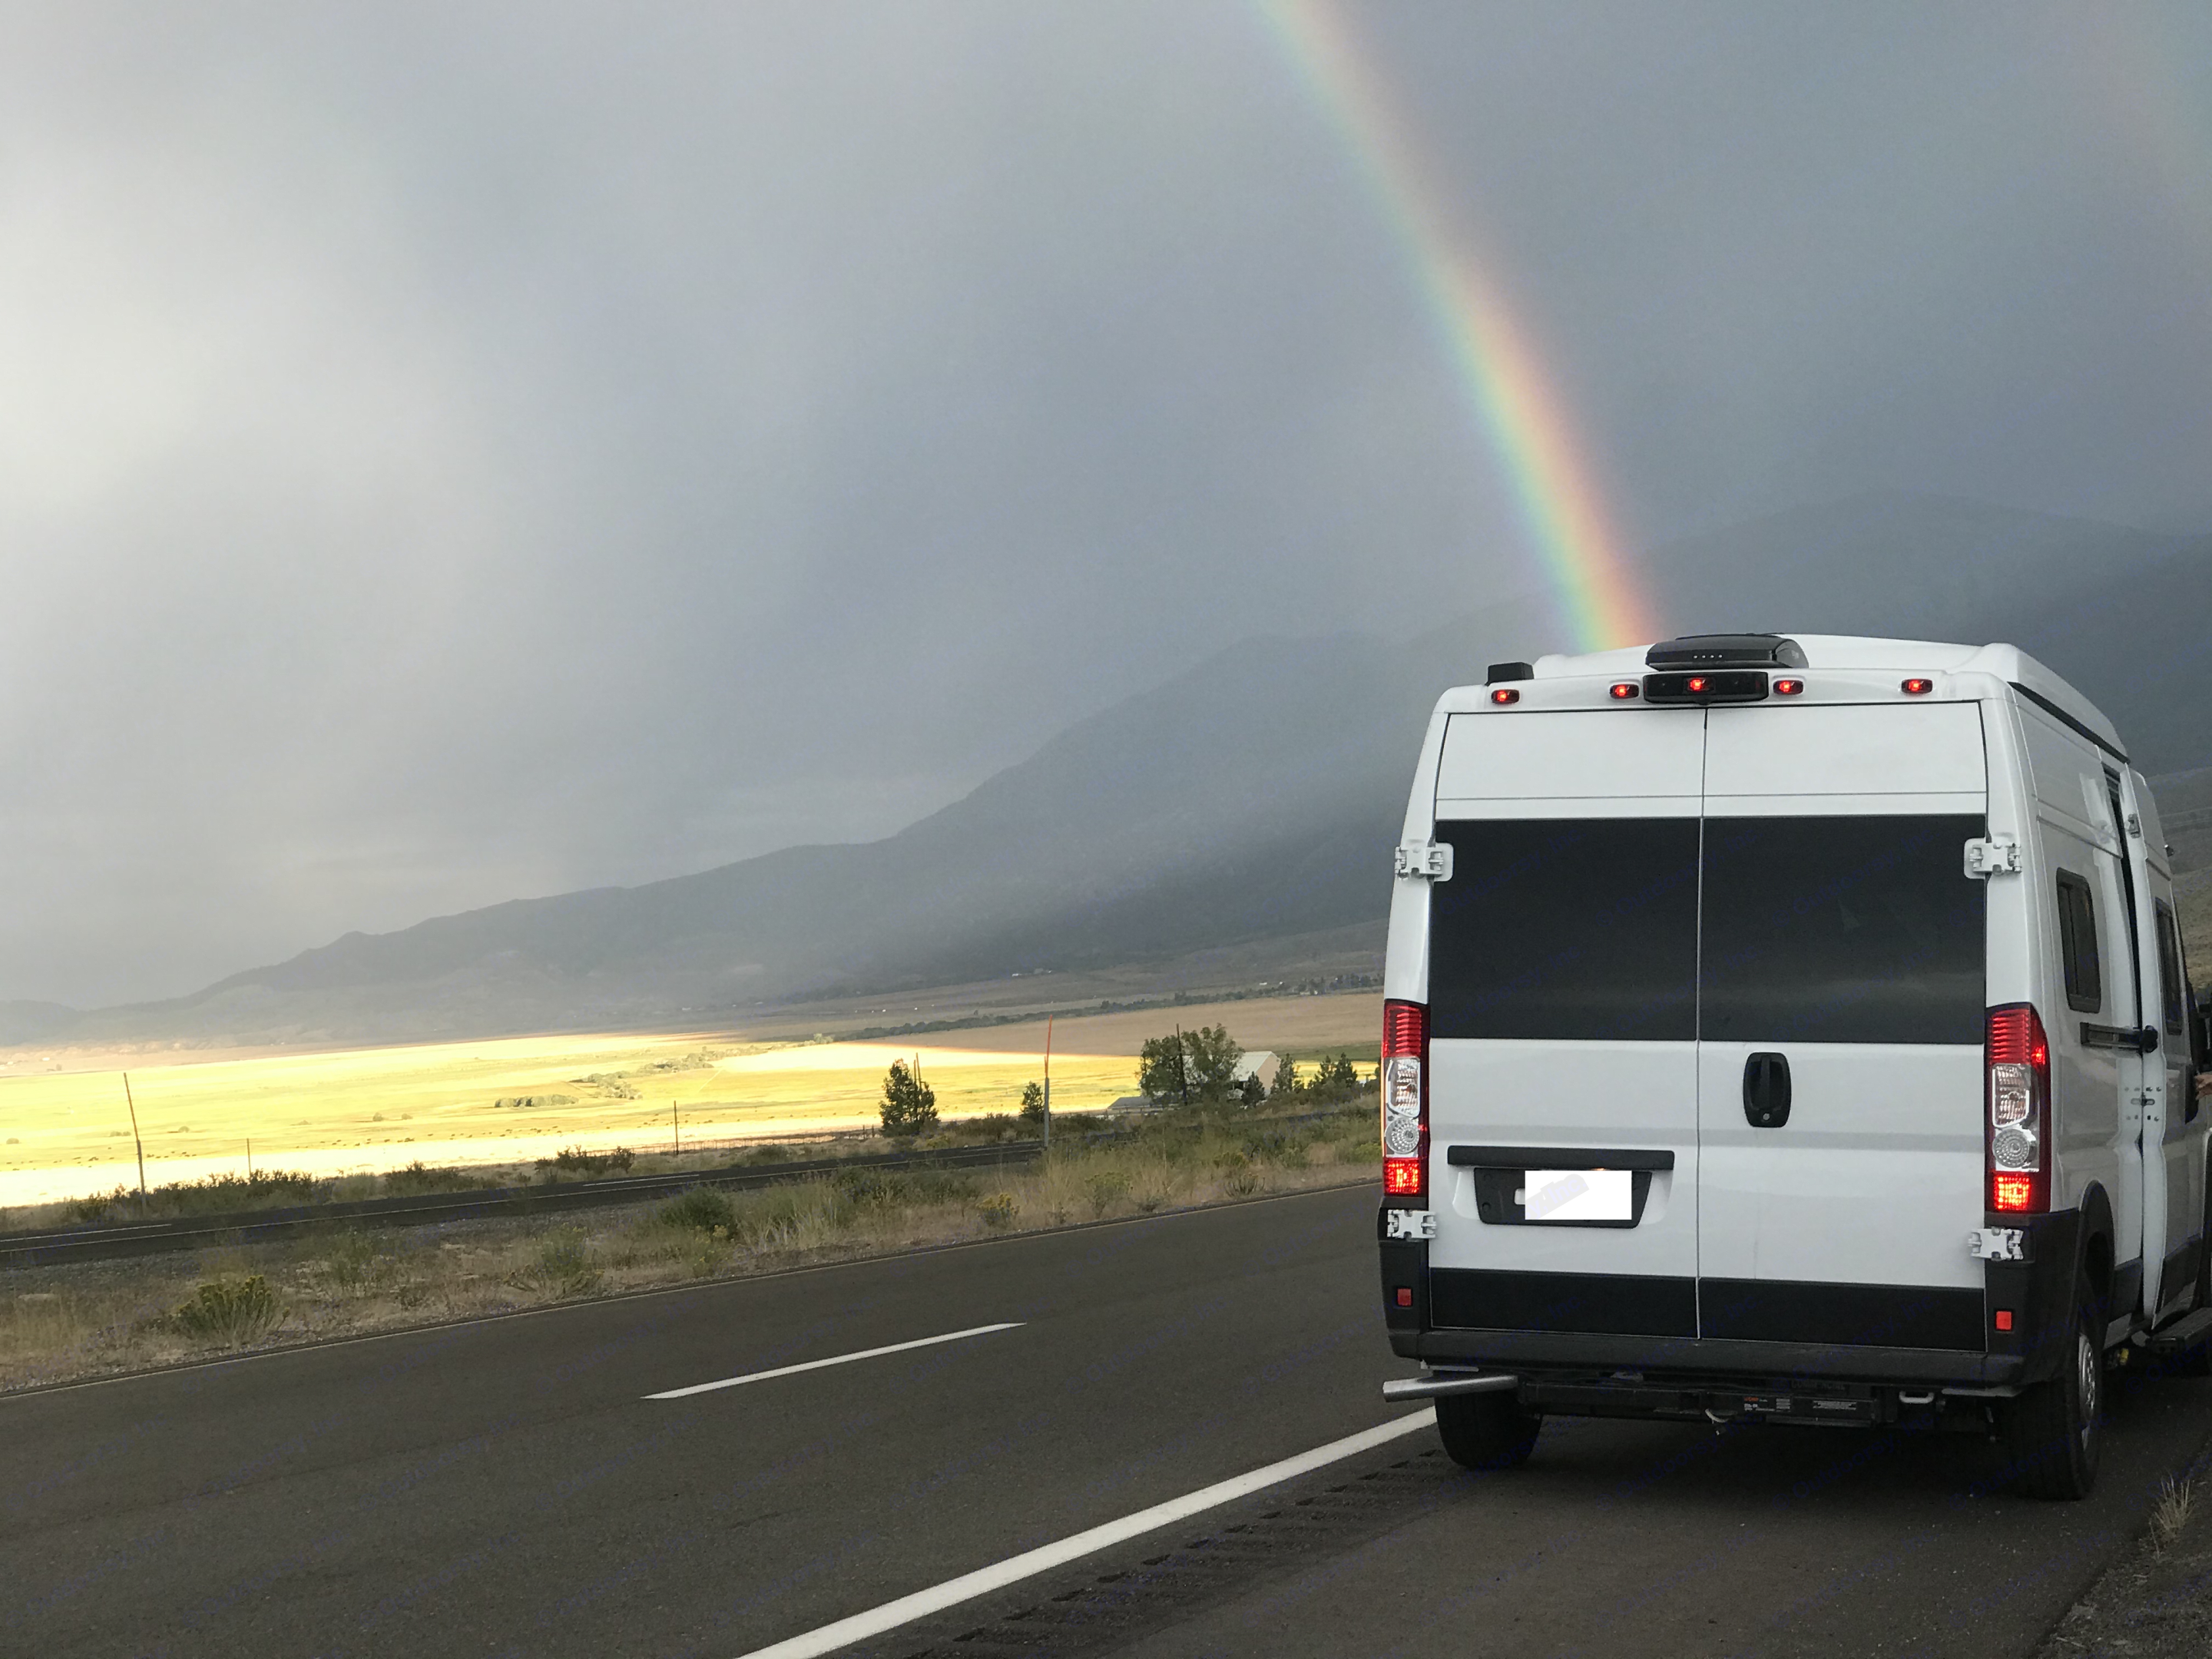 Tracking down atmospheric effects around the Great Basin. Winnebago Solis 59P 2021